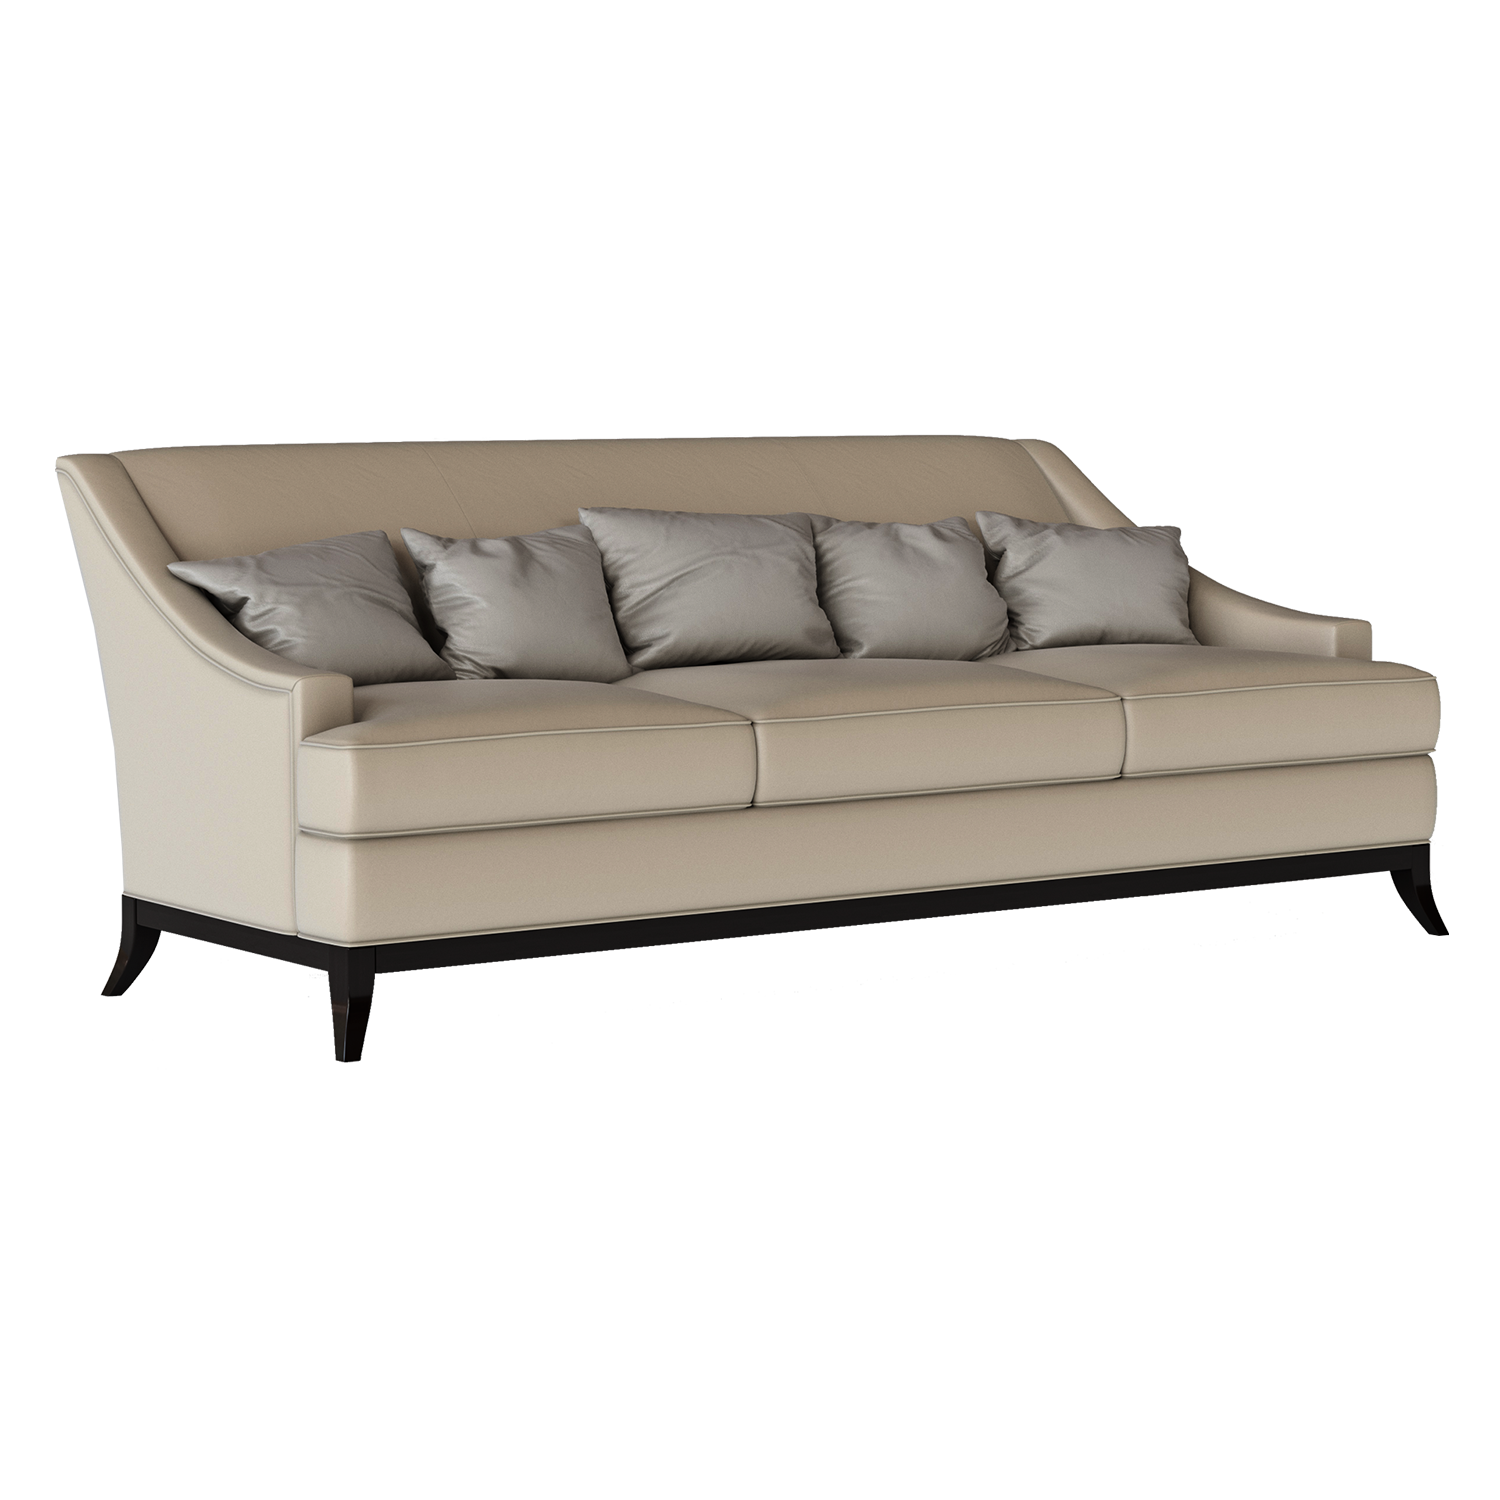 Moon Sectional Sofa Bed: Shepelfurniture